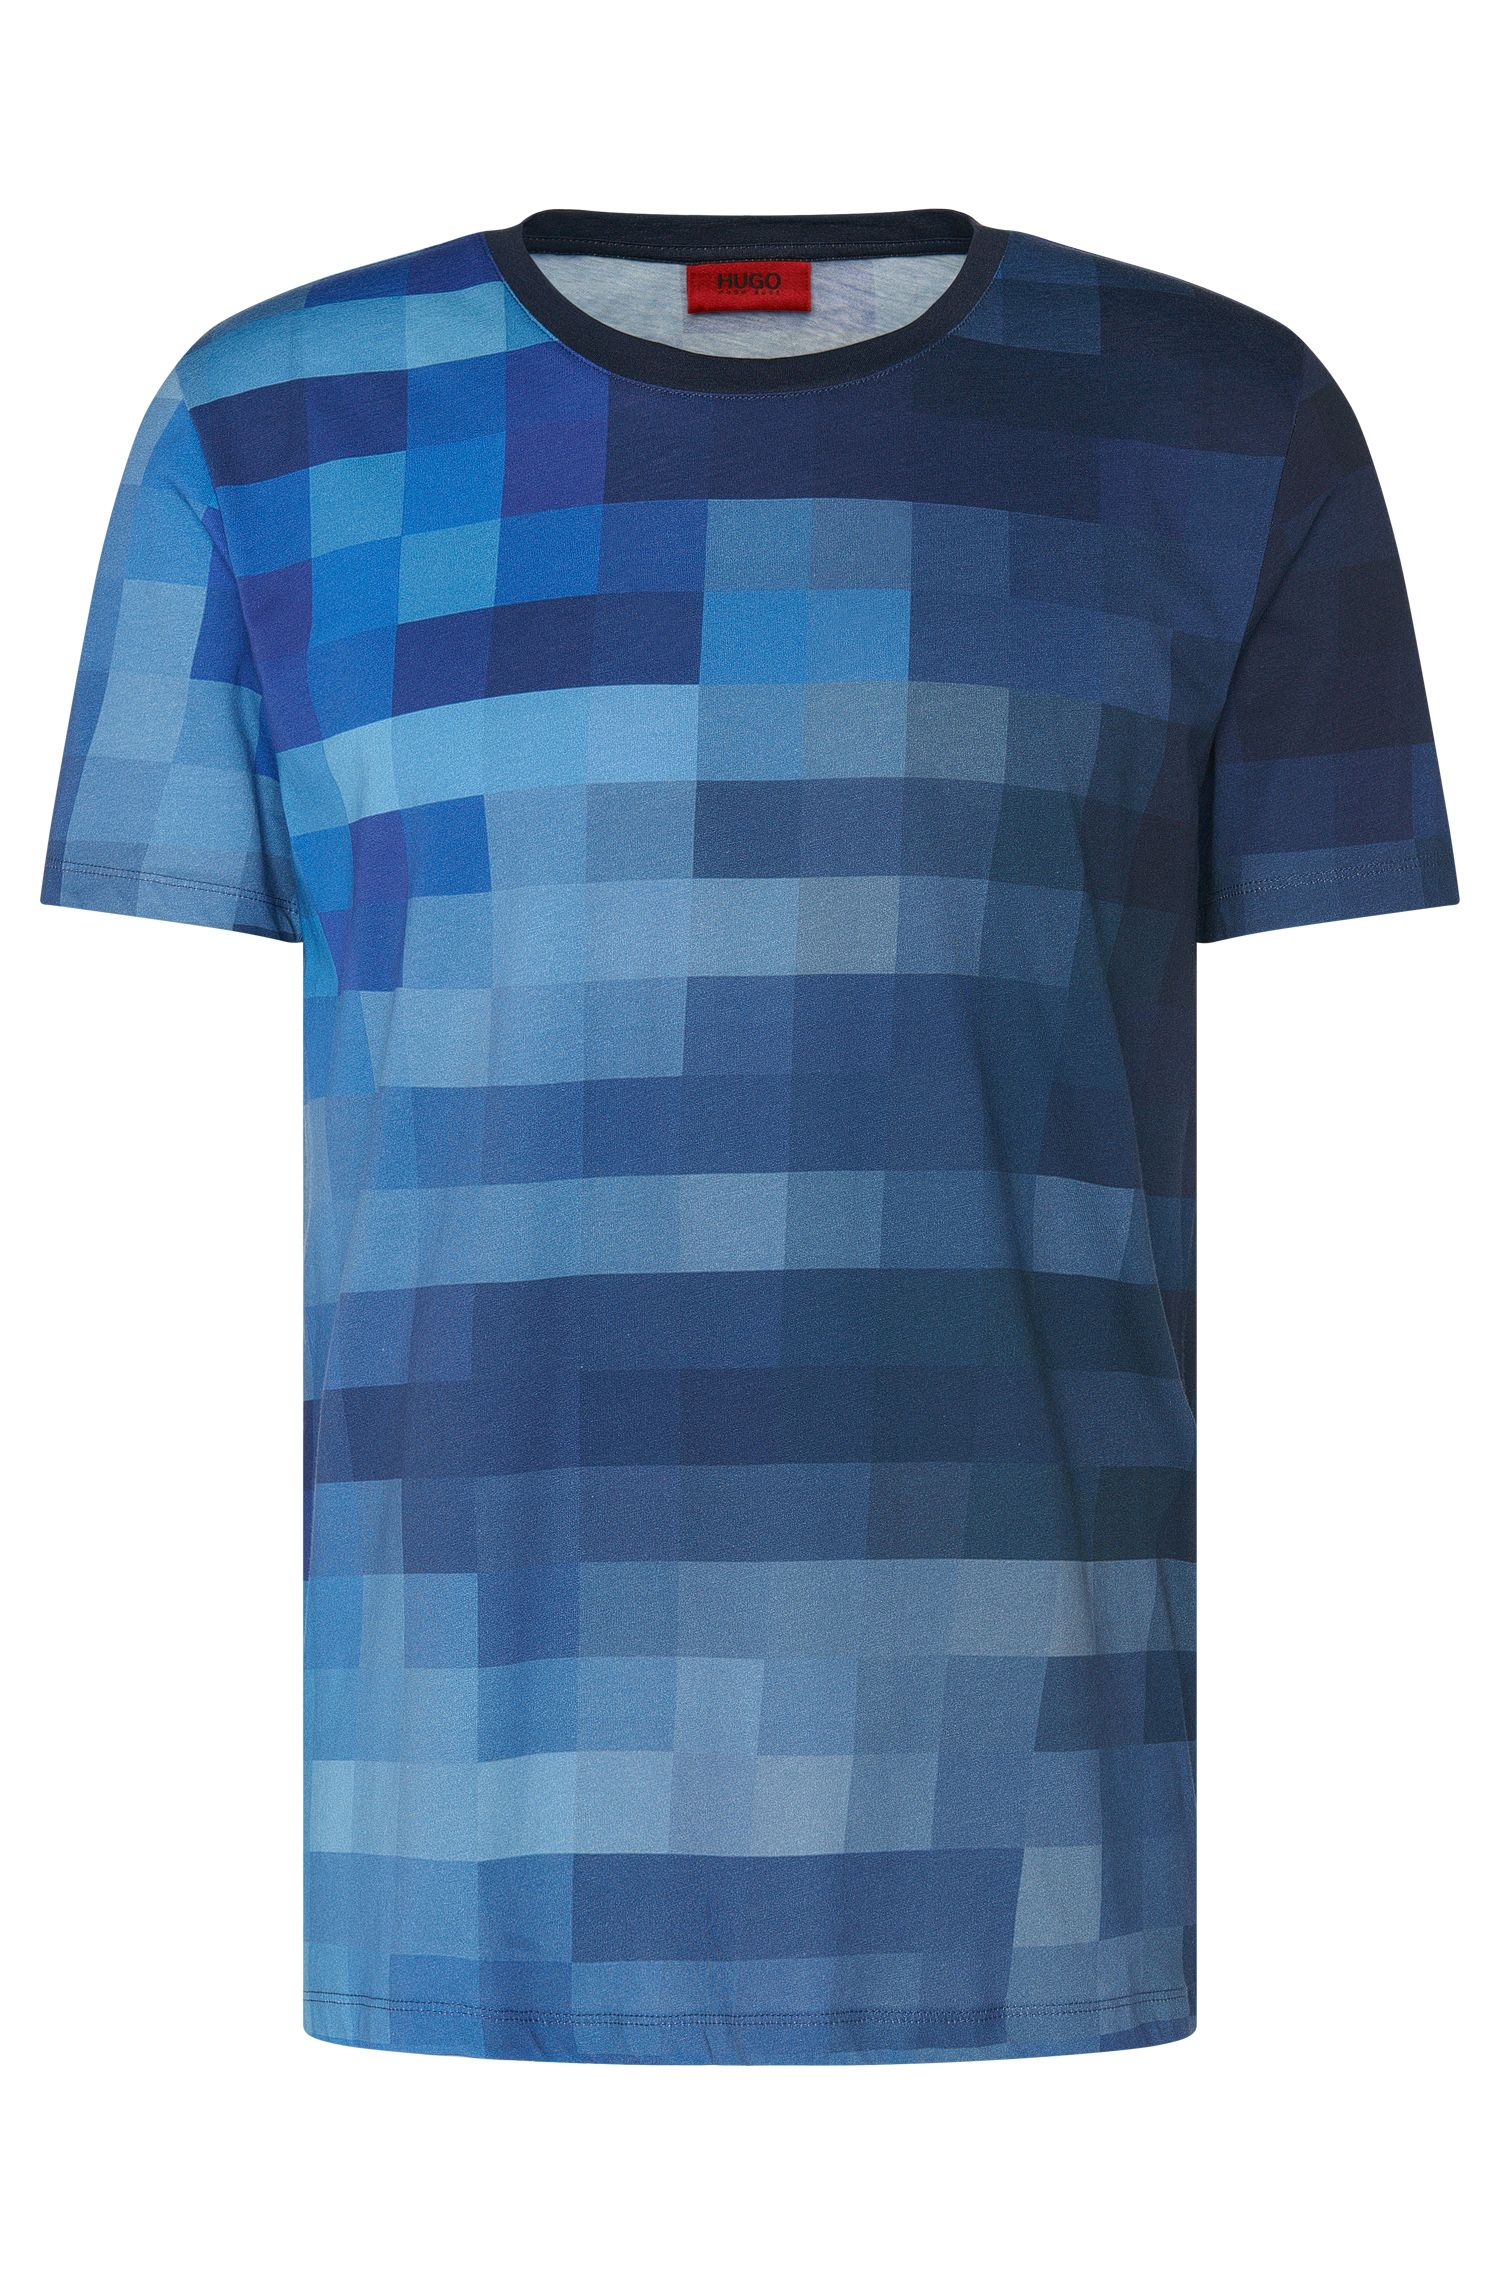 Gemustertes Relaxed-Fit T-Shirt aus Baumwolle: 'Diffuse'